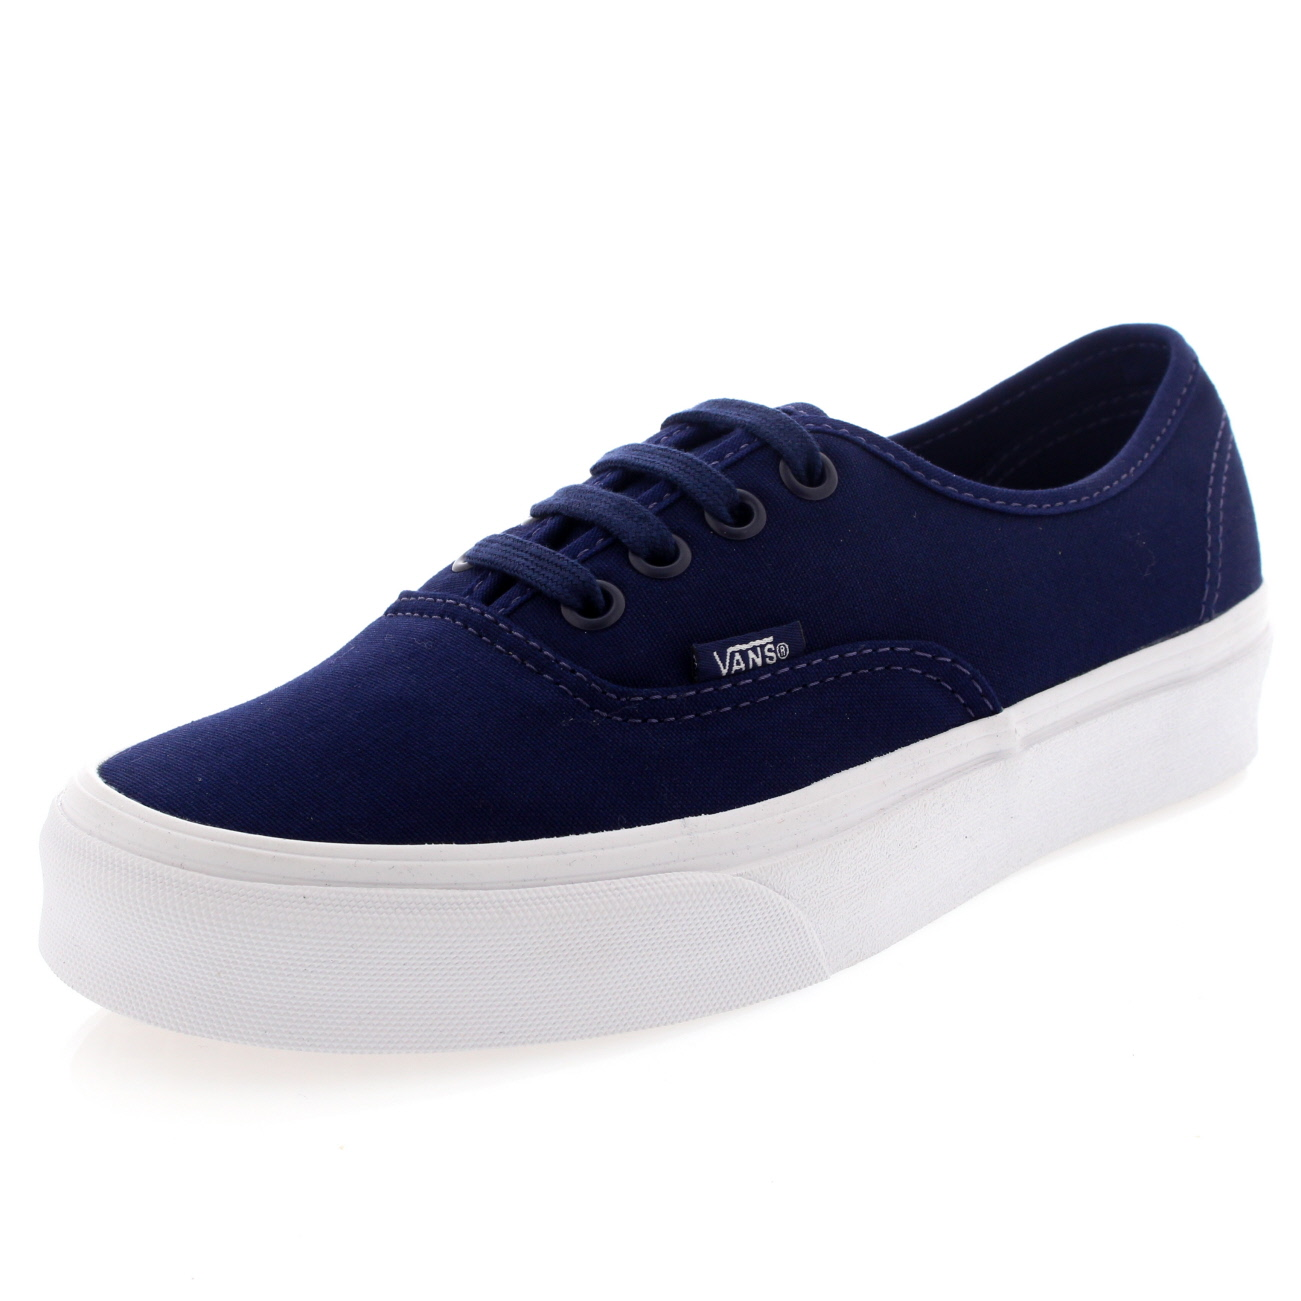 Vans | Vans Shoes & Clothing for Men | ASOS